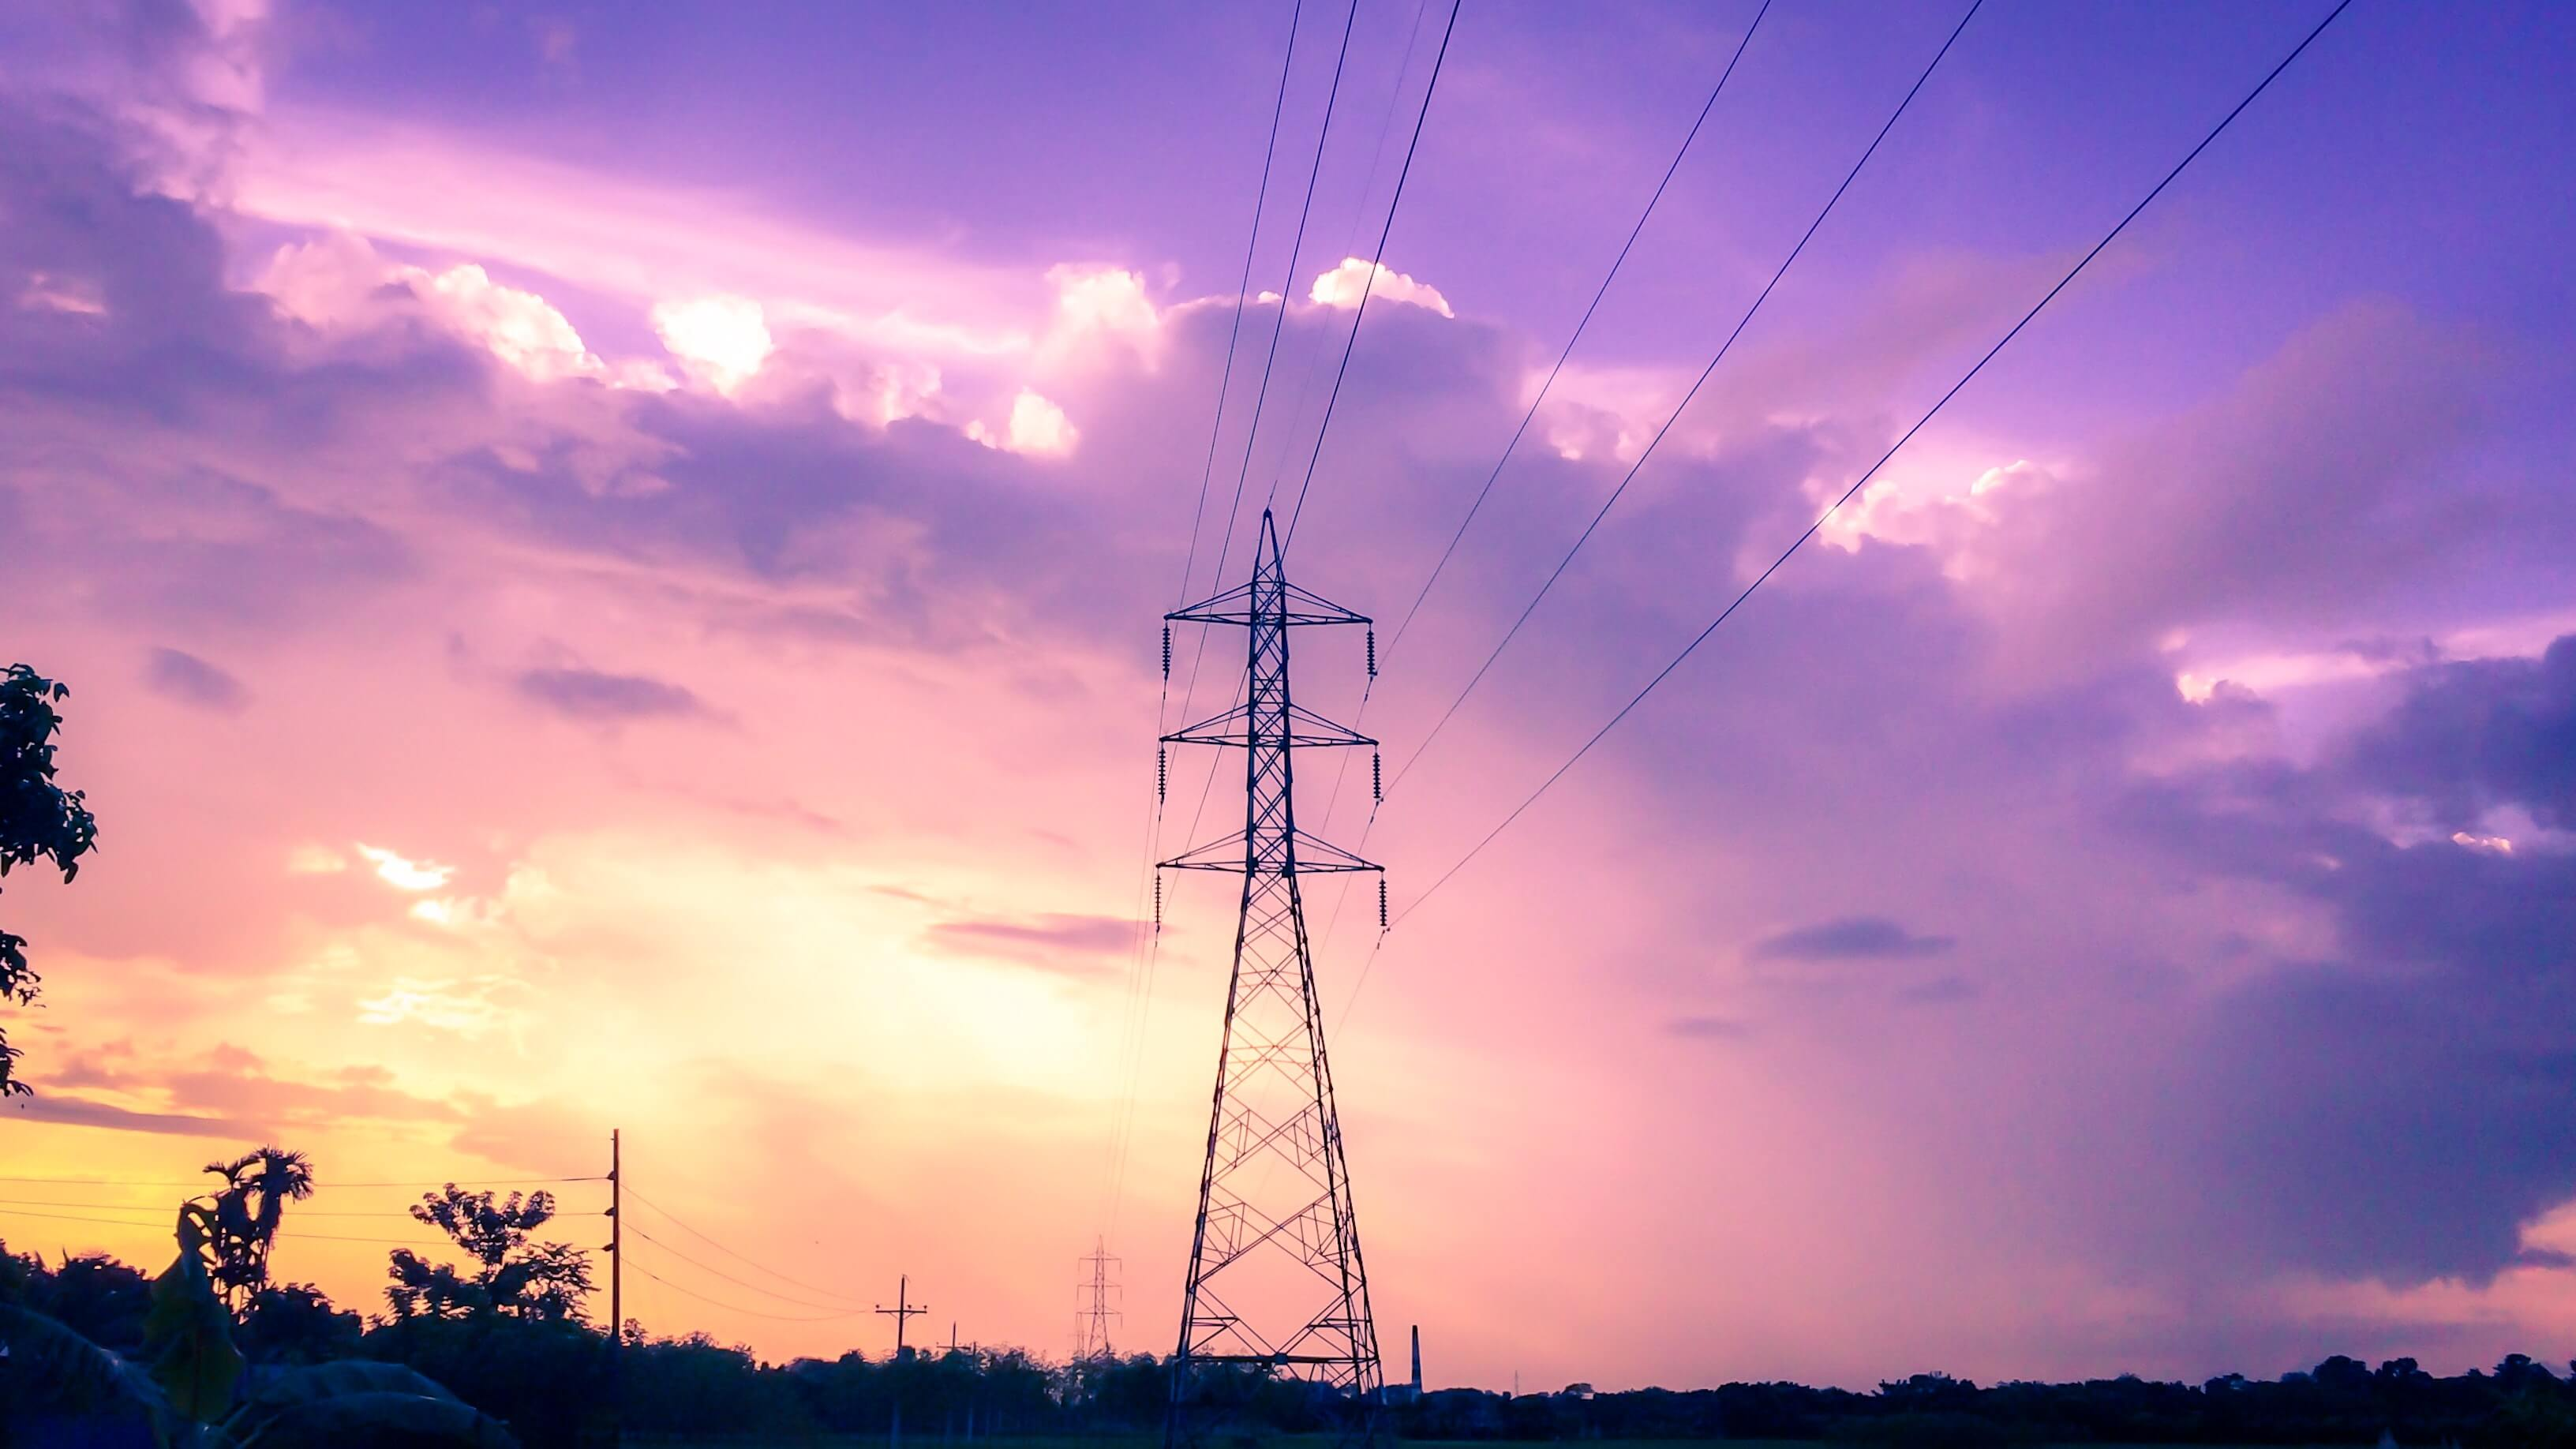 photography-of-electric-tower-during-sunset